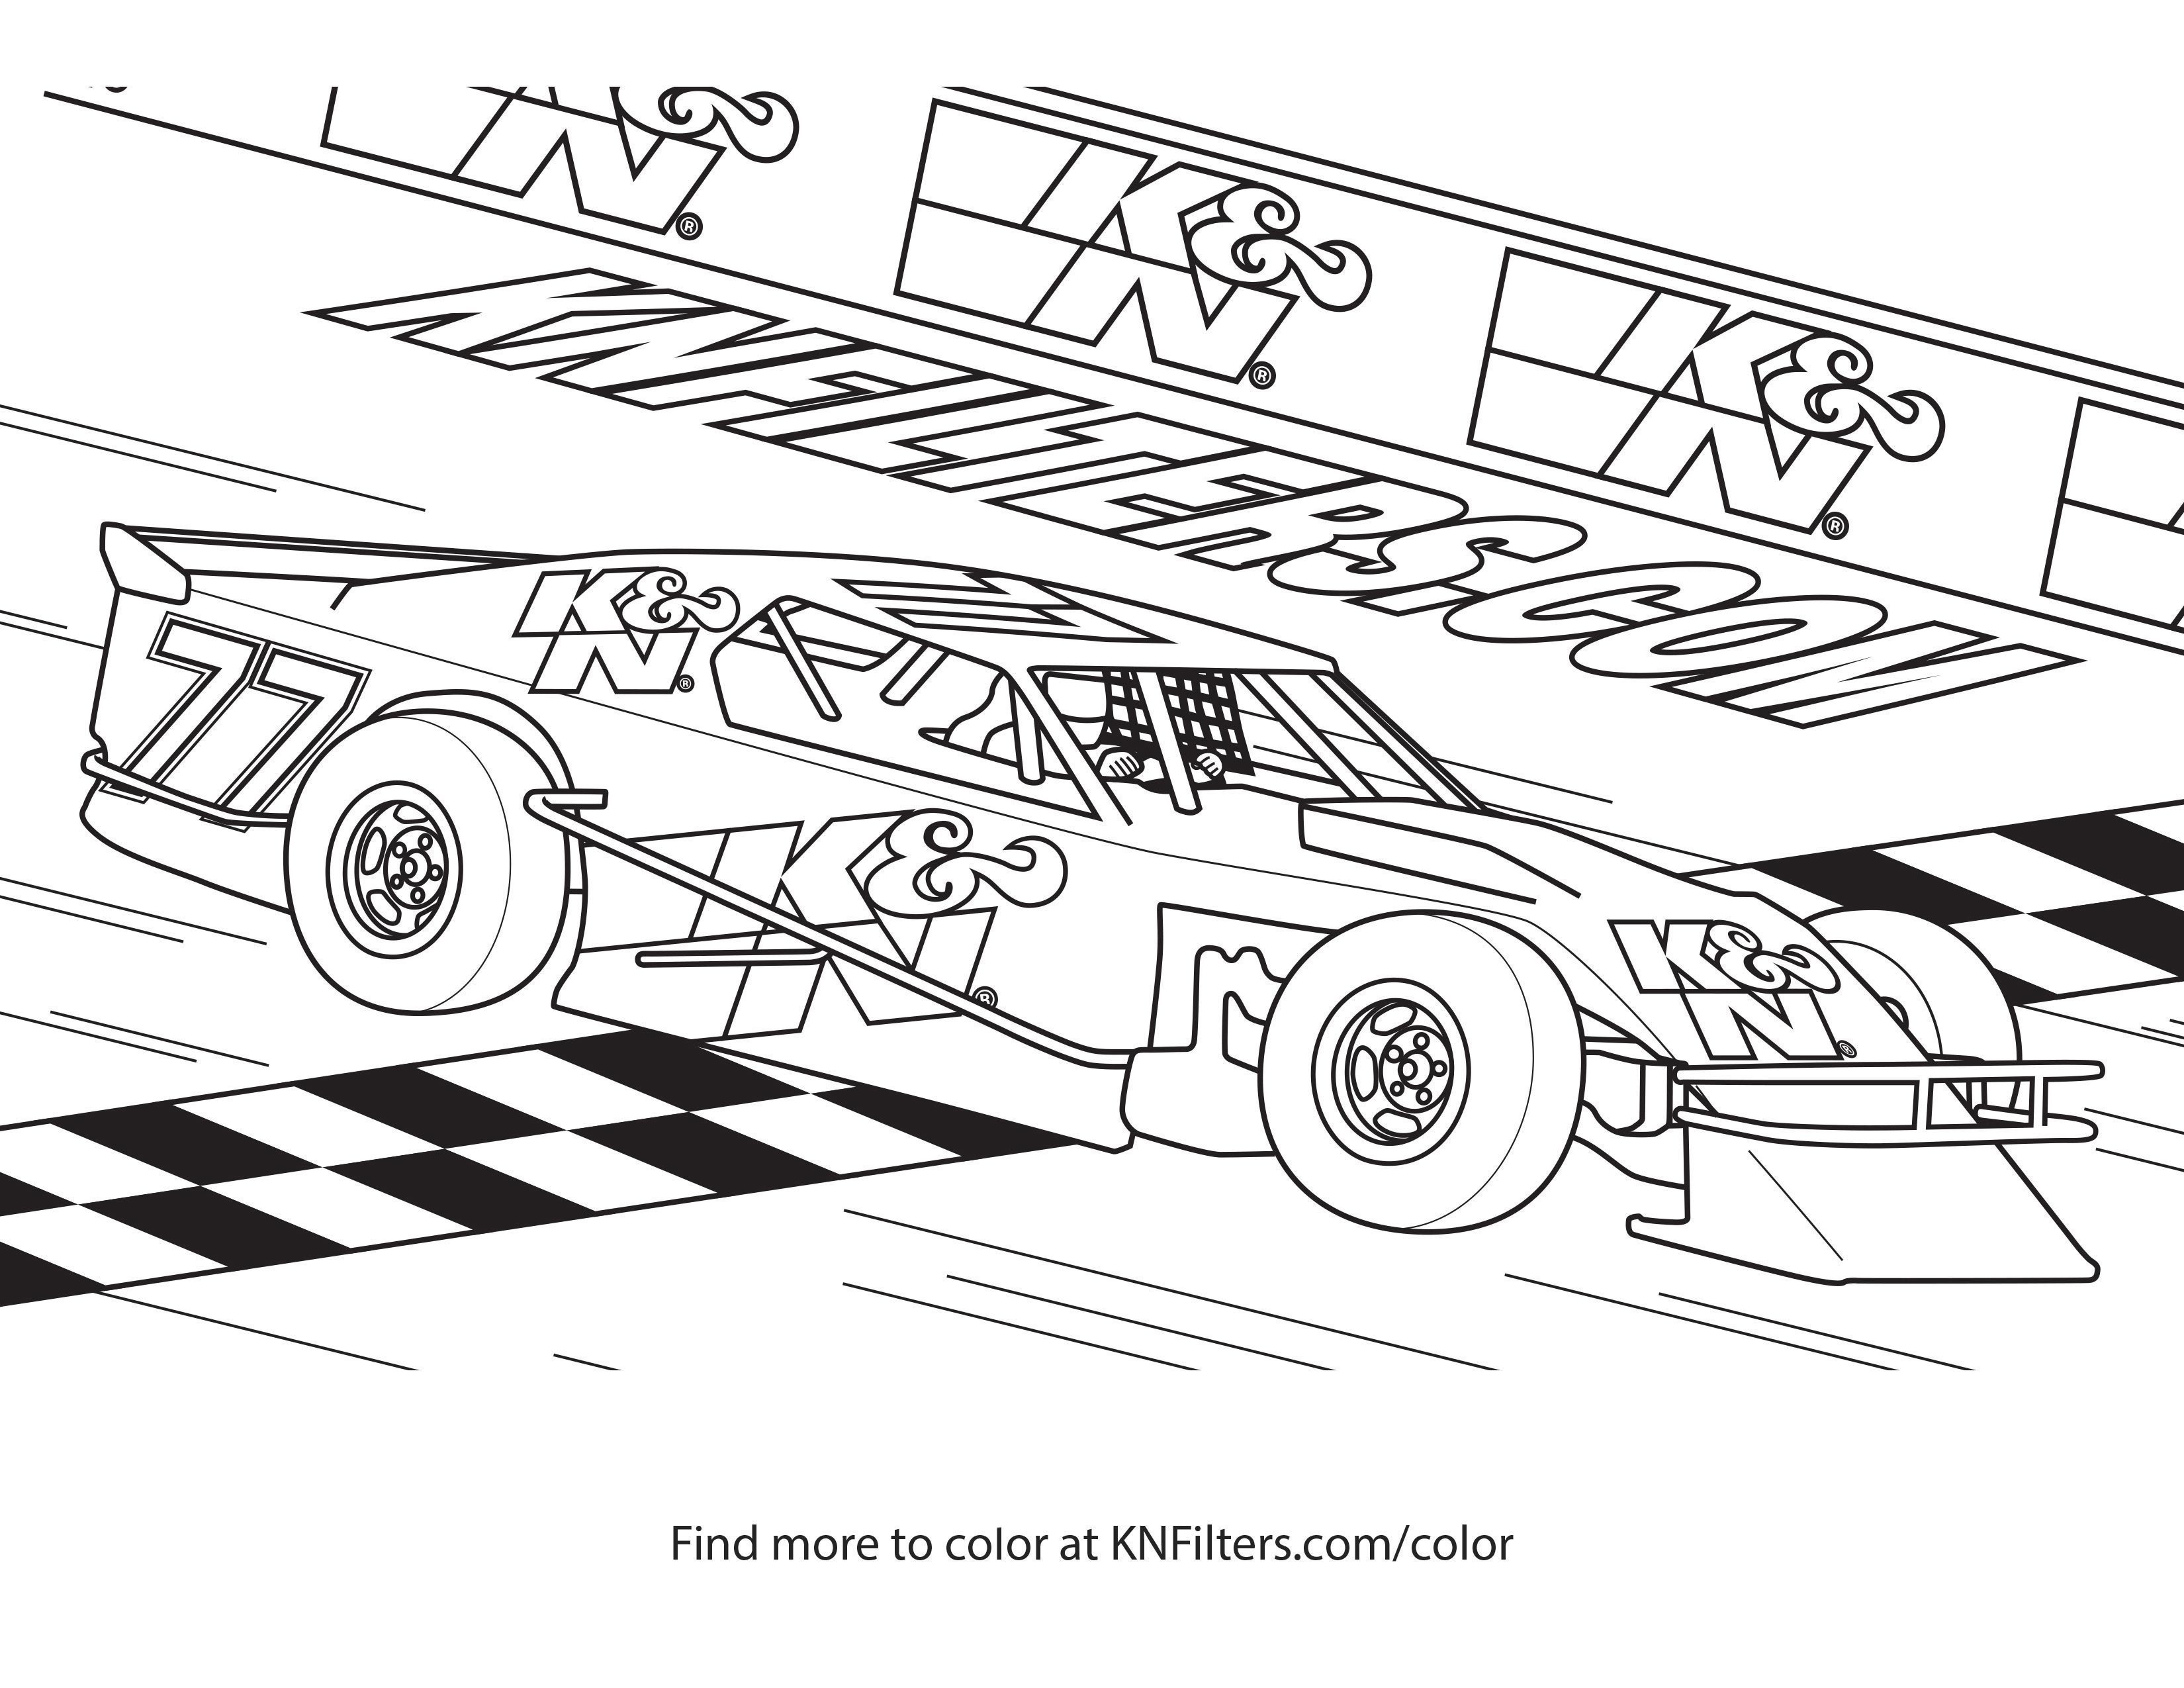 Car Printable Coloring Pages Free Printable Coloring Pages Of Cars For  Adults Awesome Car - birijus.com